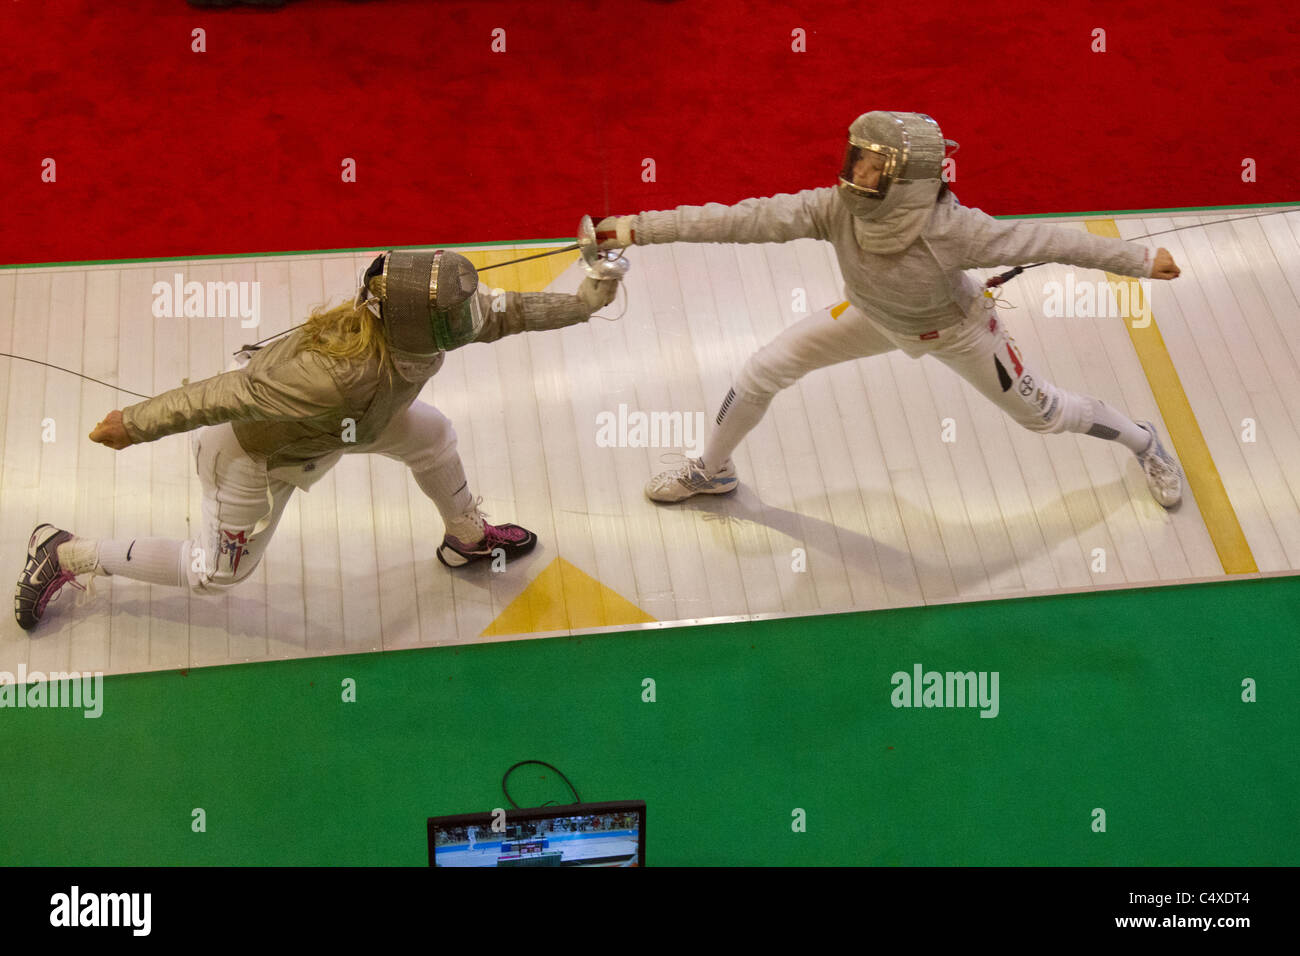 Mariel Zagunis (USA) competing against Anna Limbach (GER) the 2011 New York Saber World Cup. Stock Photo